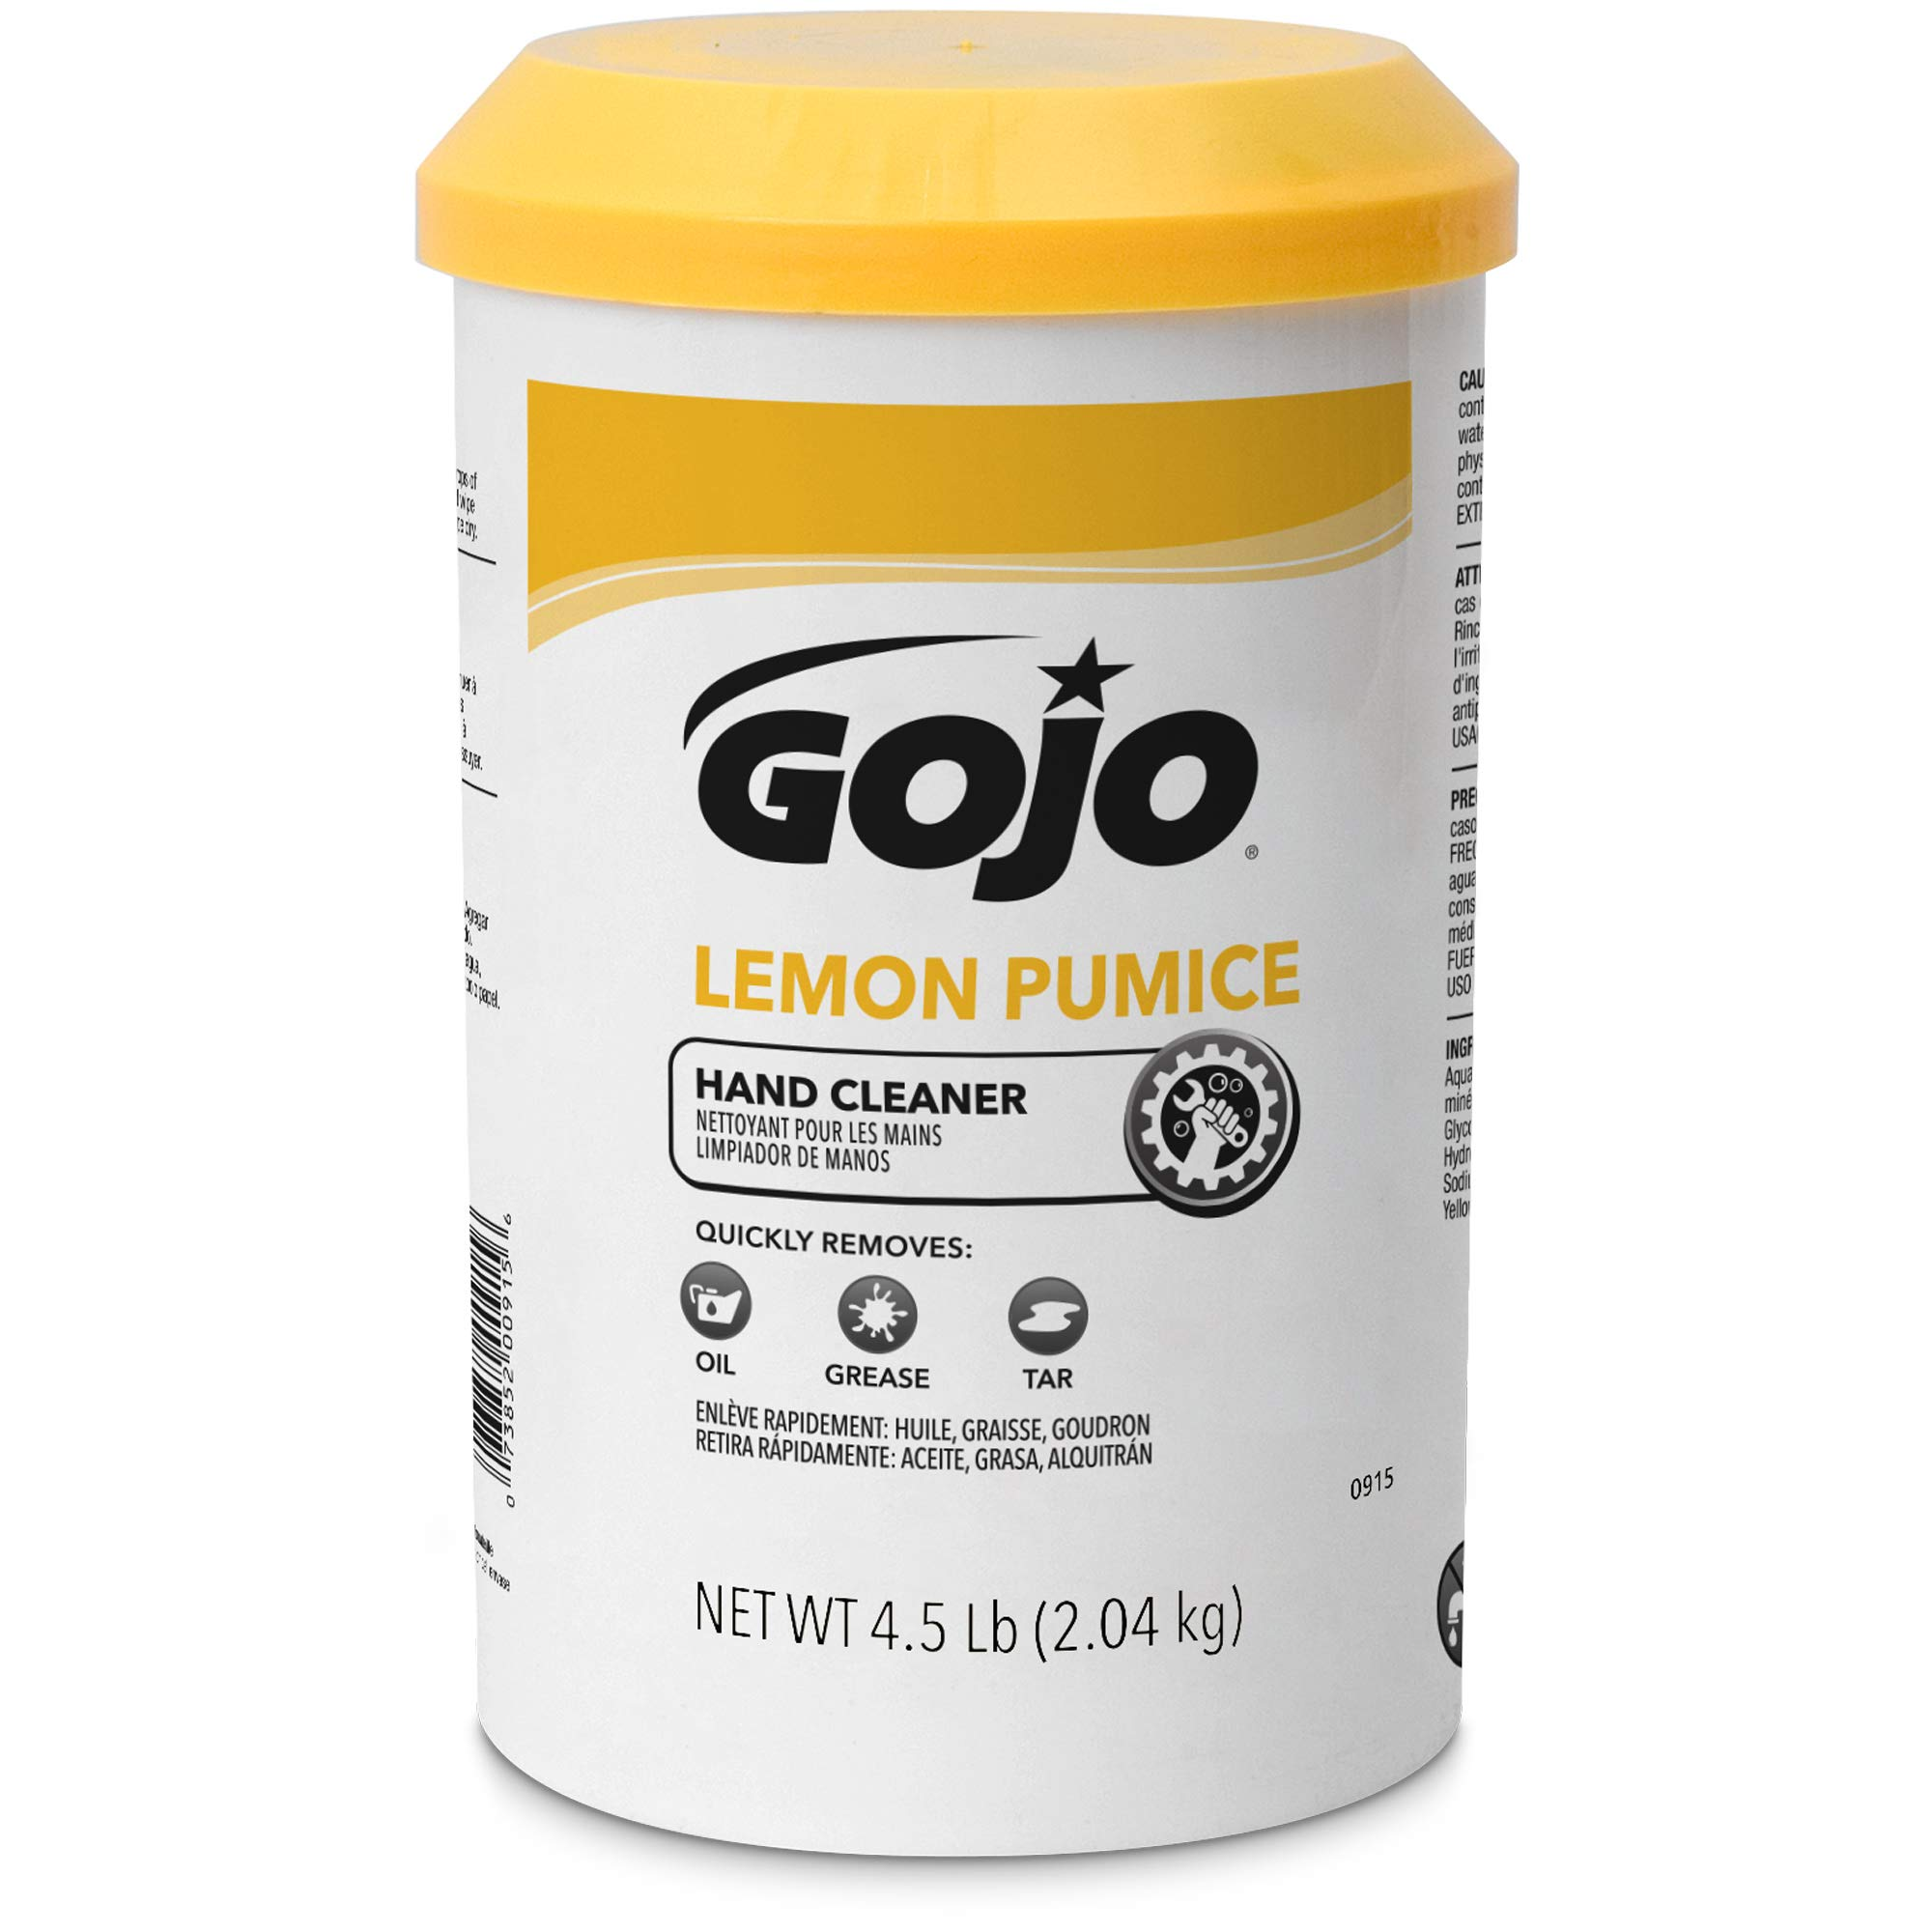 GOJO Crème-Style Hand Cleaner with Pumice, Lemon Scent, 4.5 Pounds Hand Cleaner Canister (Case of 6) - 0915-06 by Gojo (Image #3)